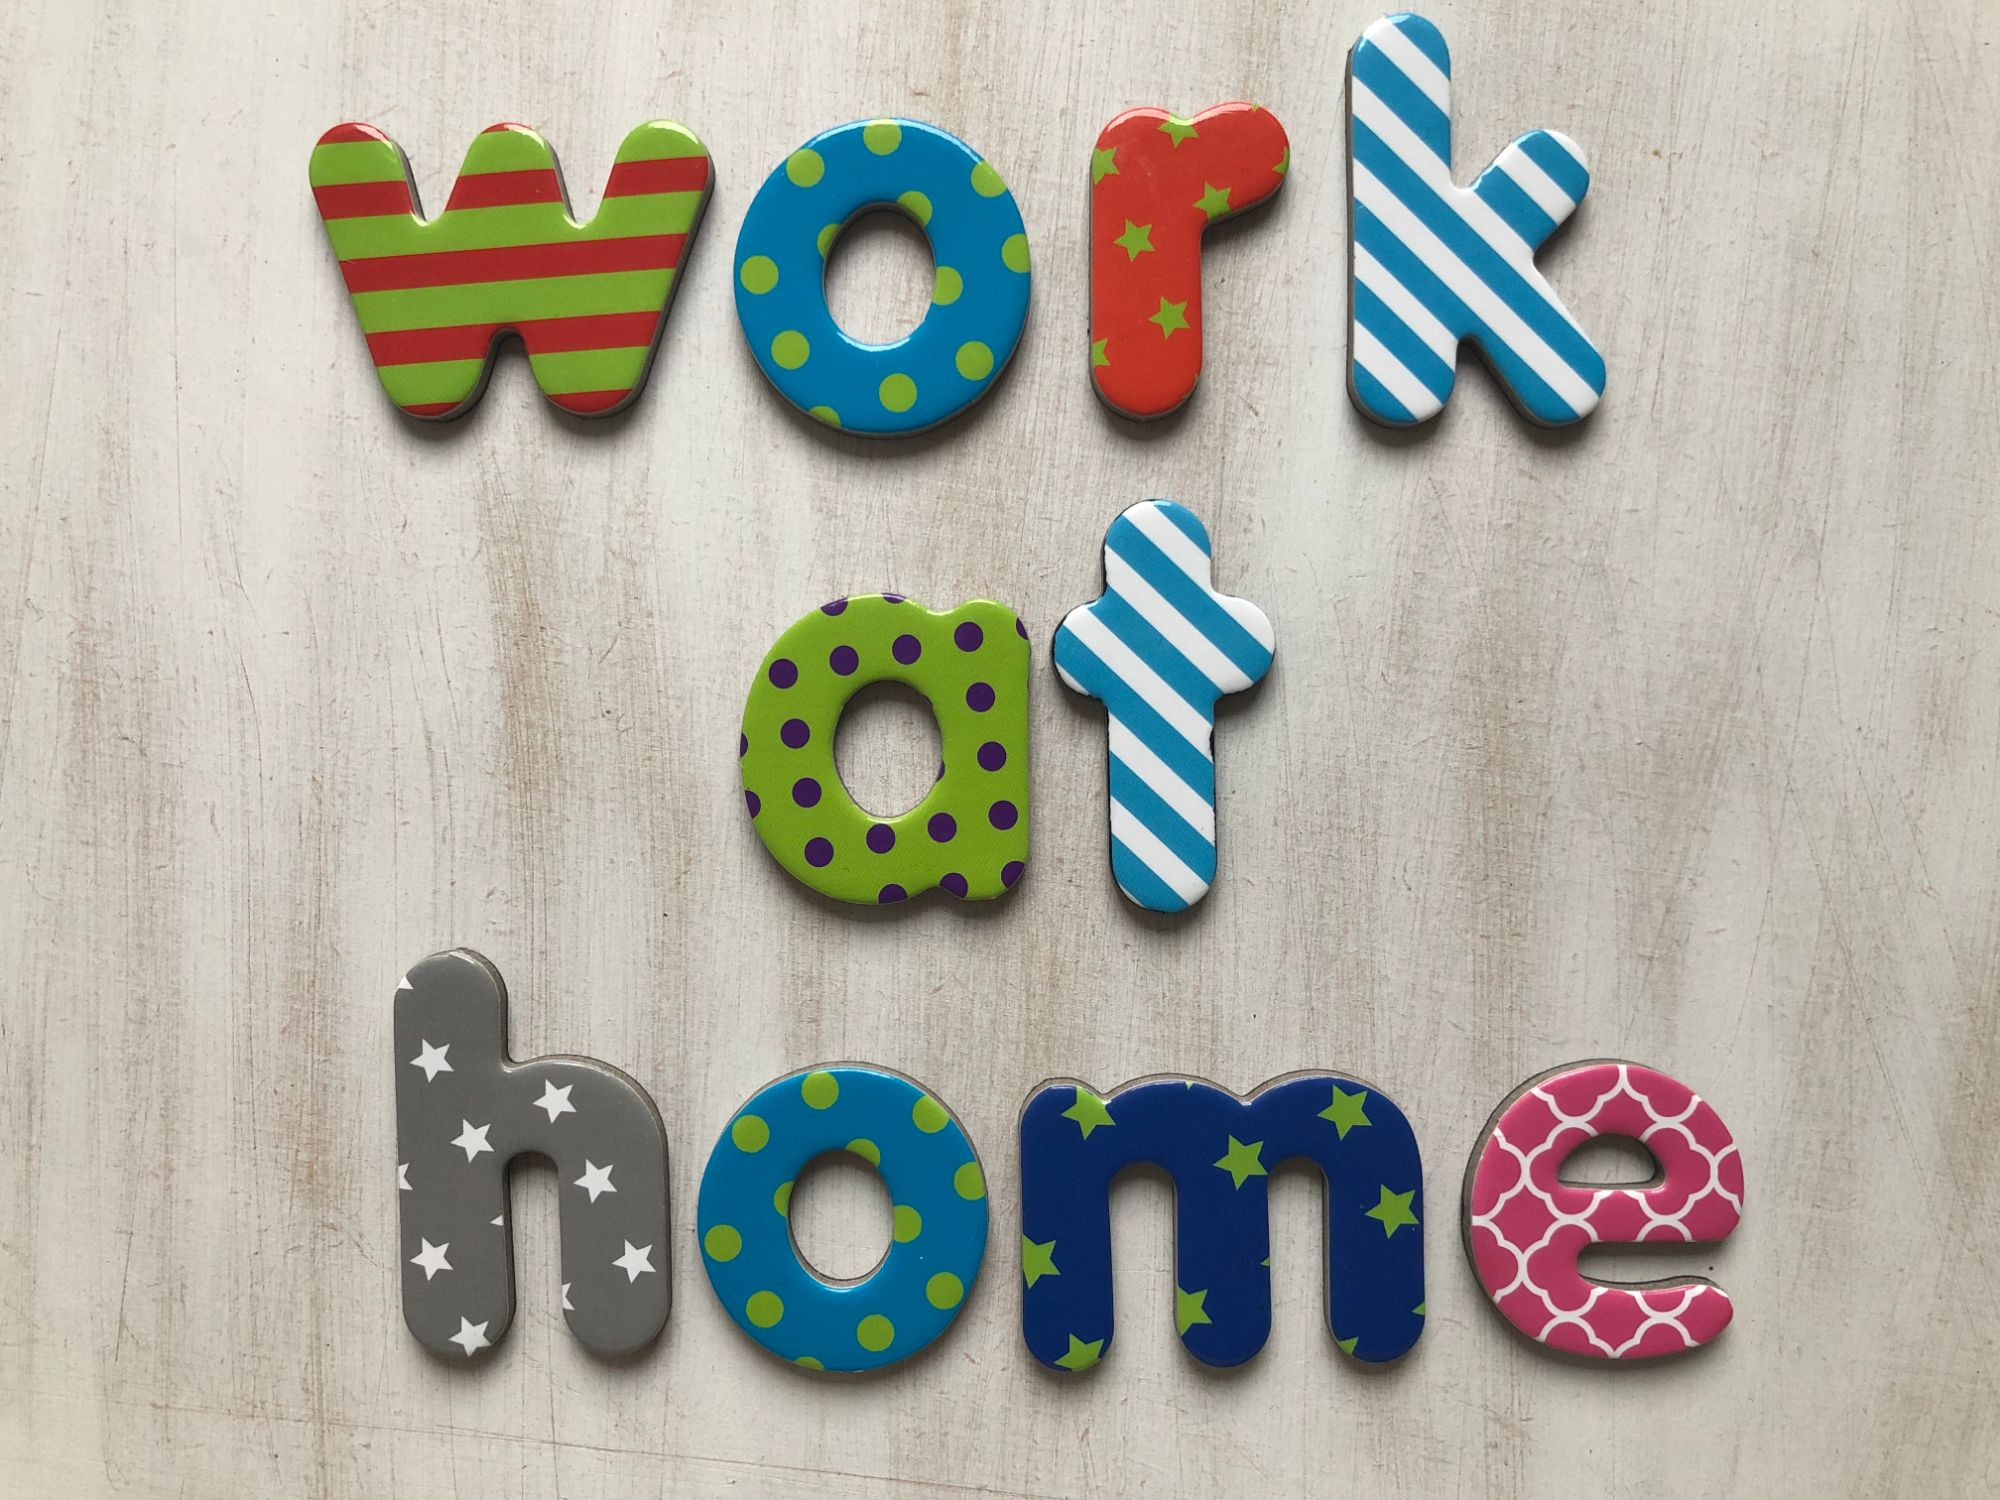 Free stock images money bloggers blog photos work at home words alphabet letters